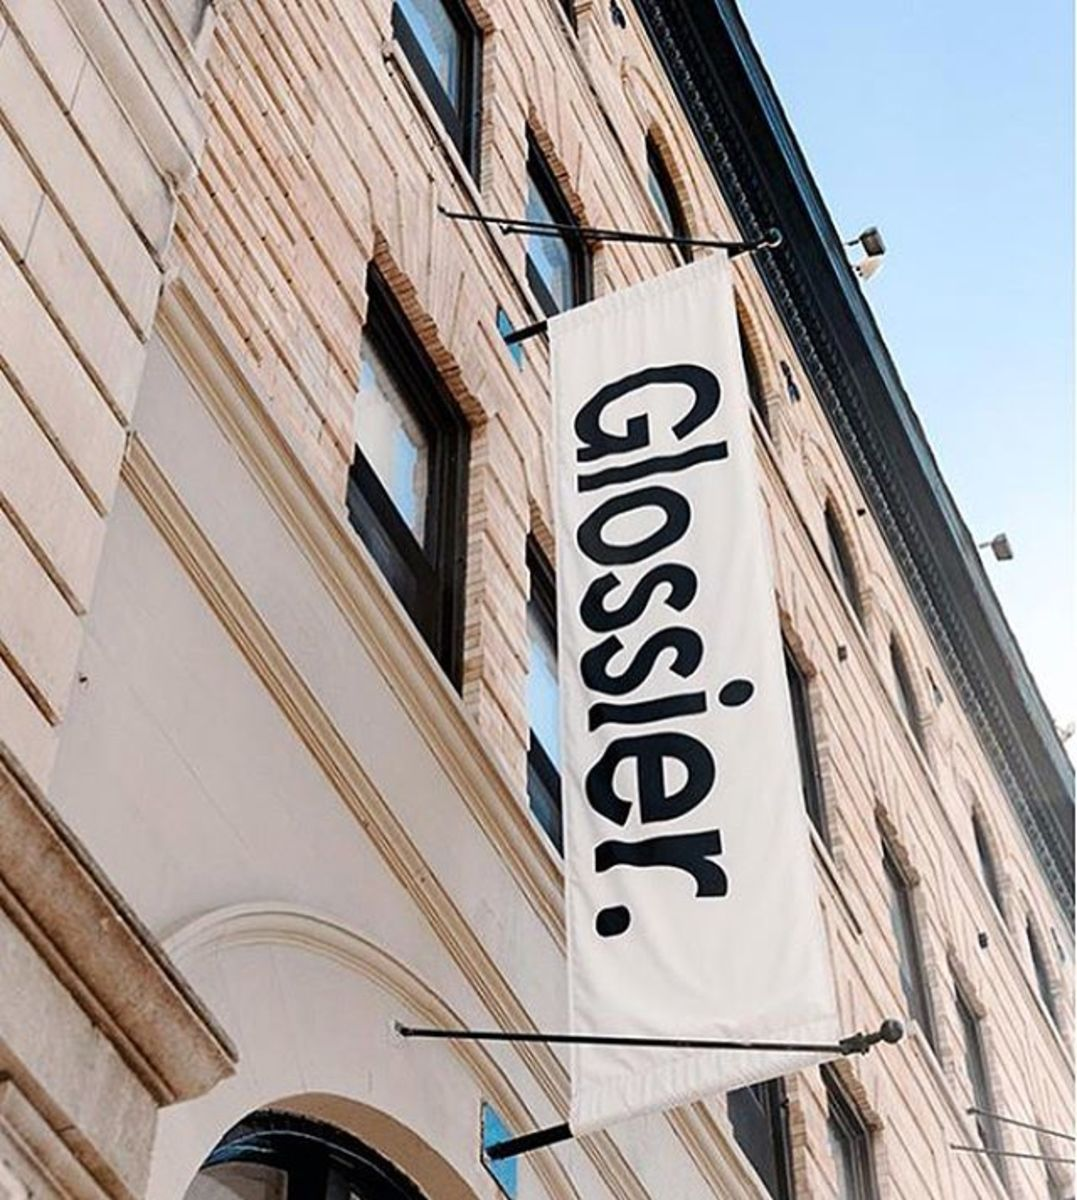 Glossier's current headquarters. Photo: @glossier/Instagram